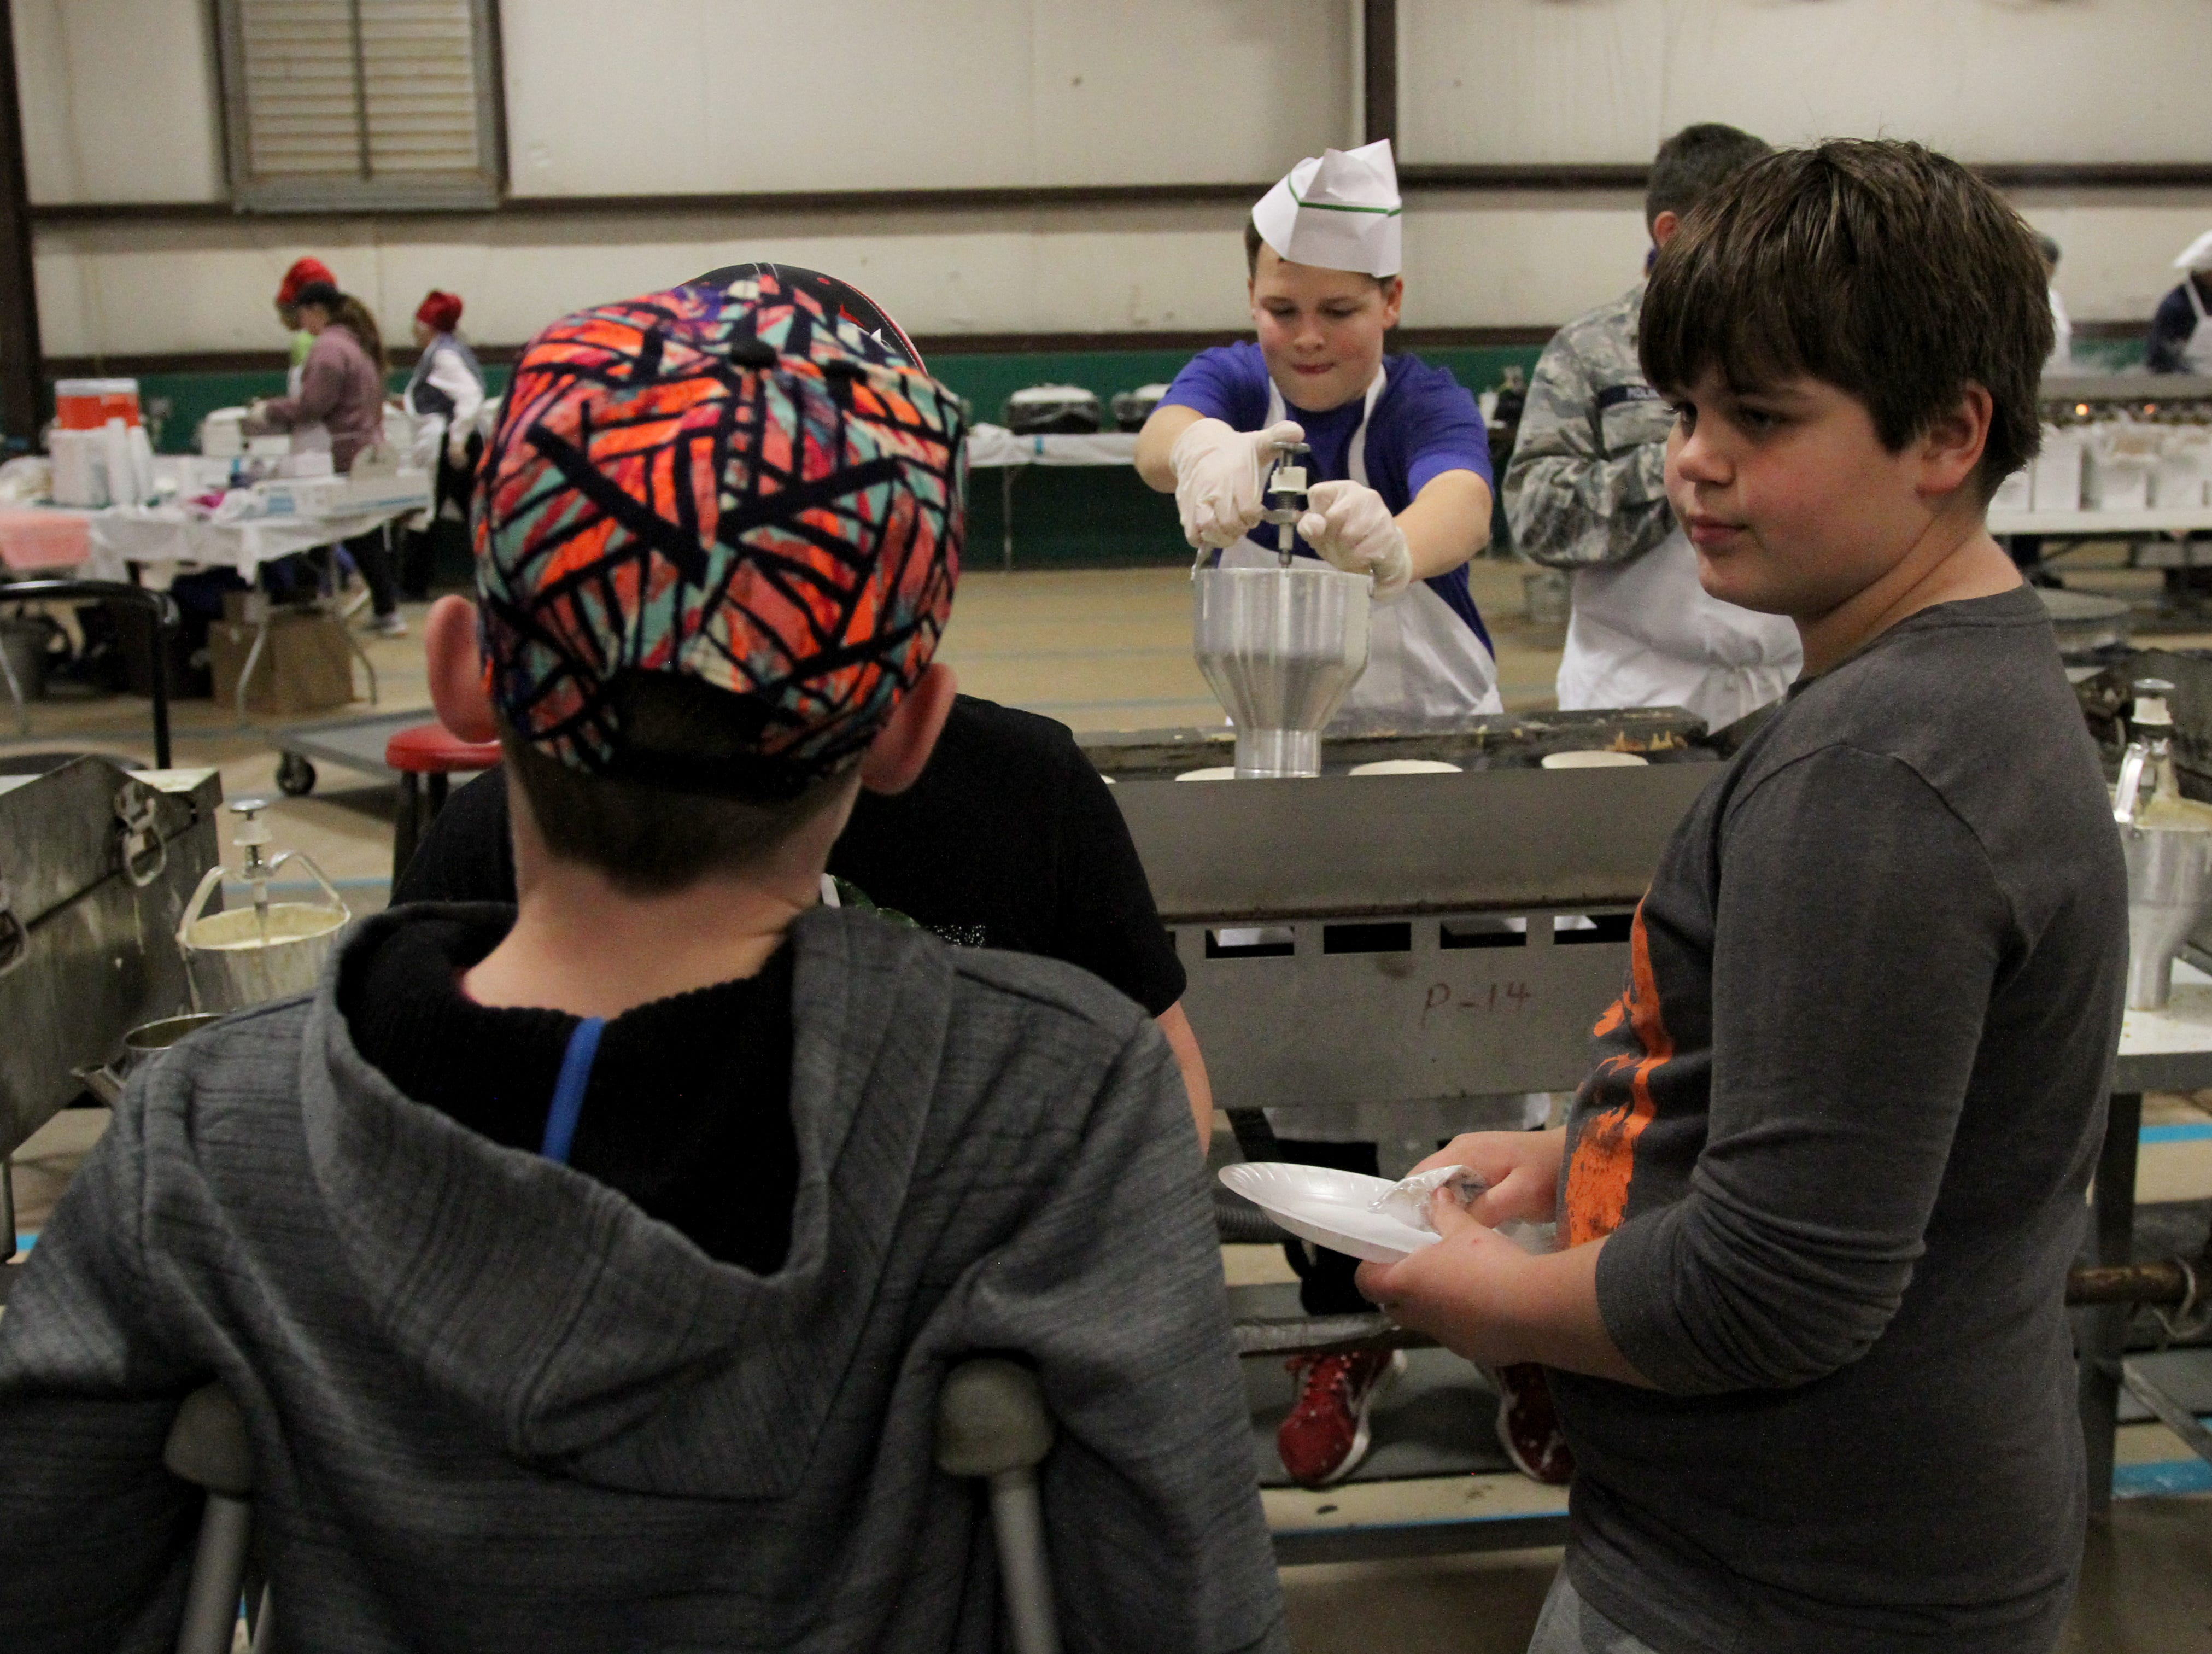 Generations of families volunteered for the 63rd University Kiwanis Club Pancake Festival Saturday, Jan. 26, 2019, at the J.S. Bridwell Agricultural Center.